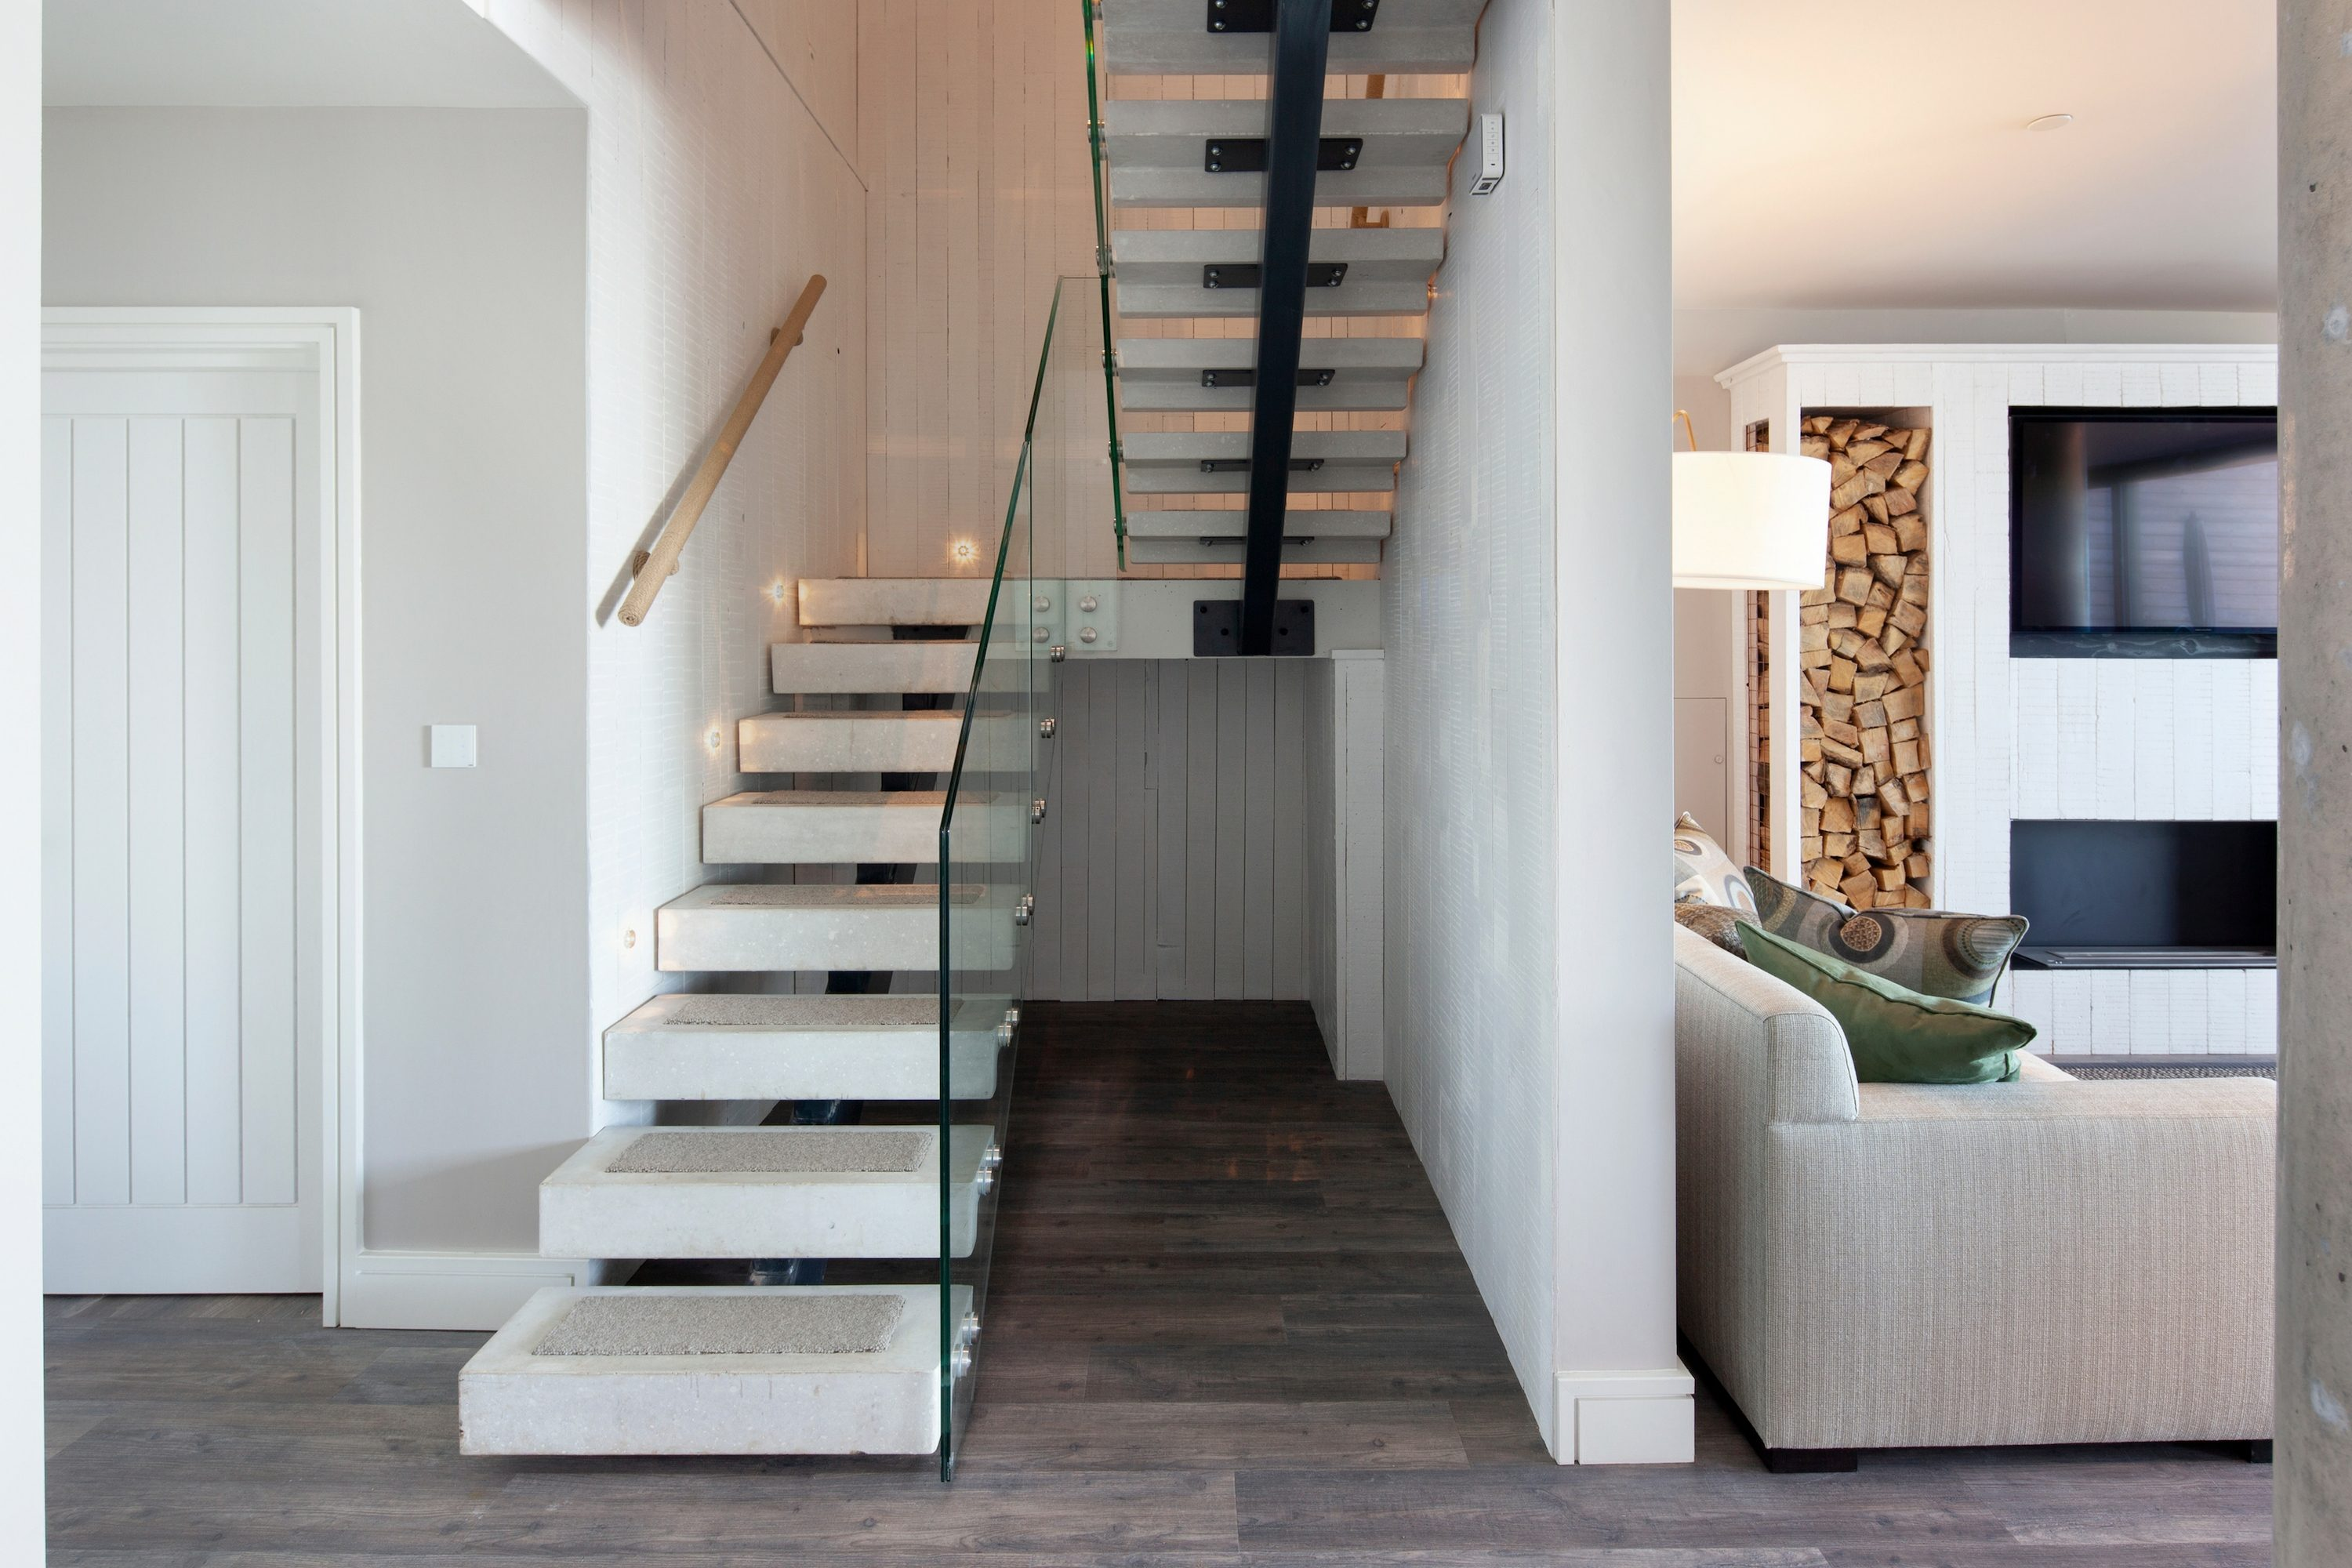 Straight spine beam staircase